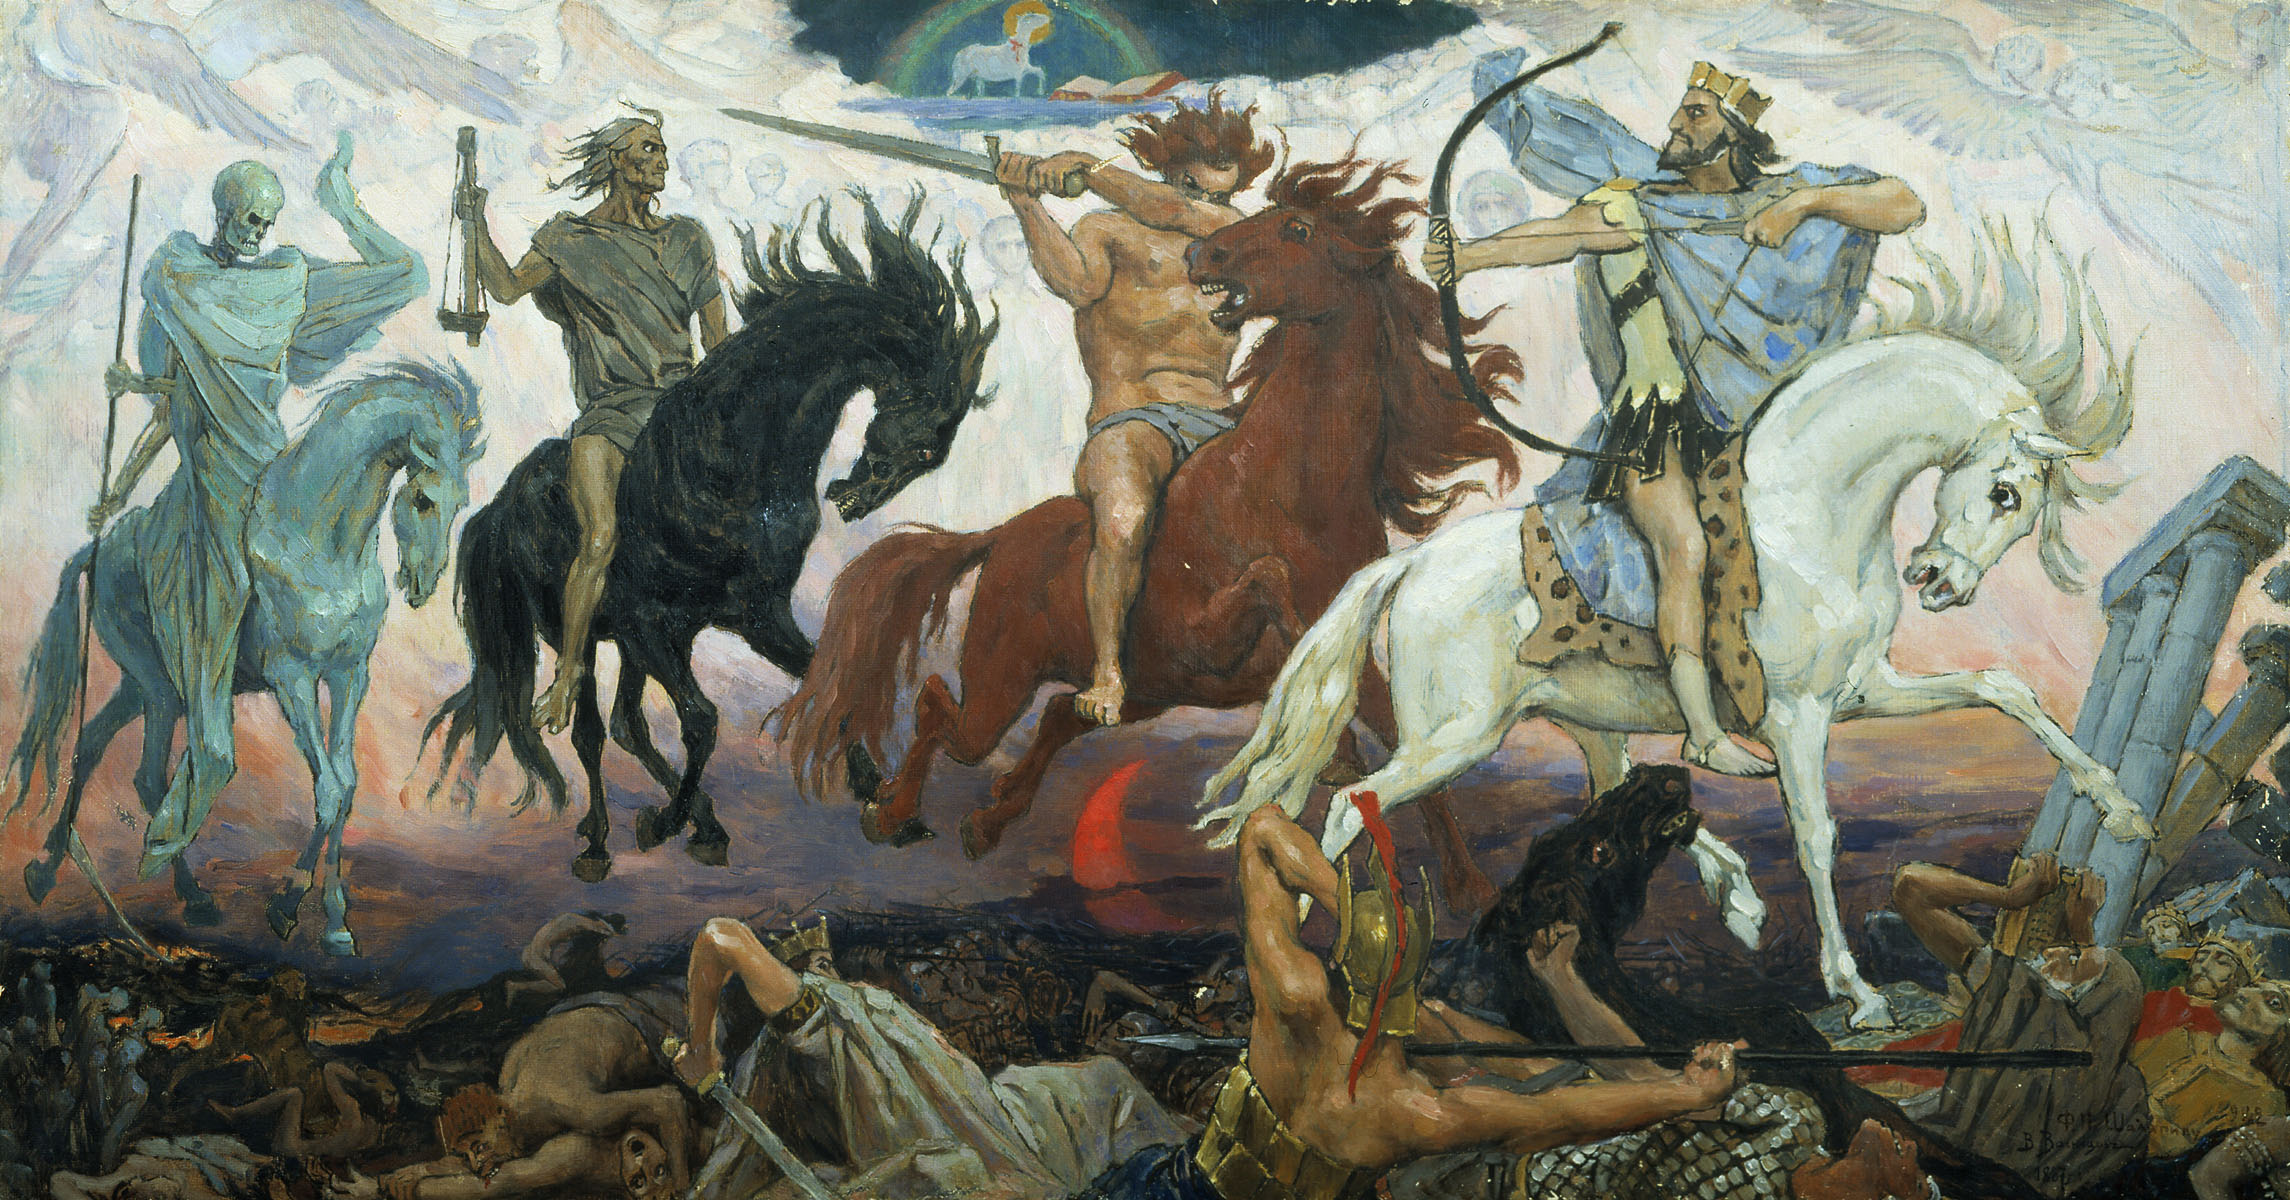 4 horses, signs of the end of times